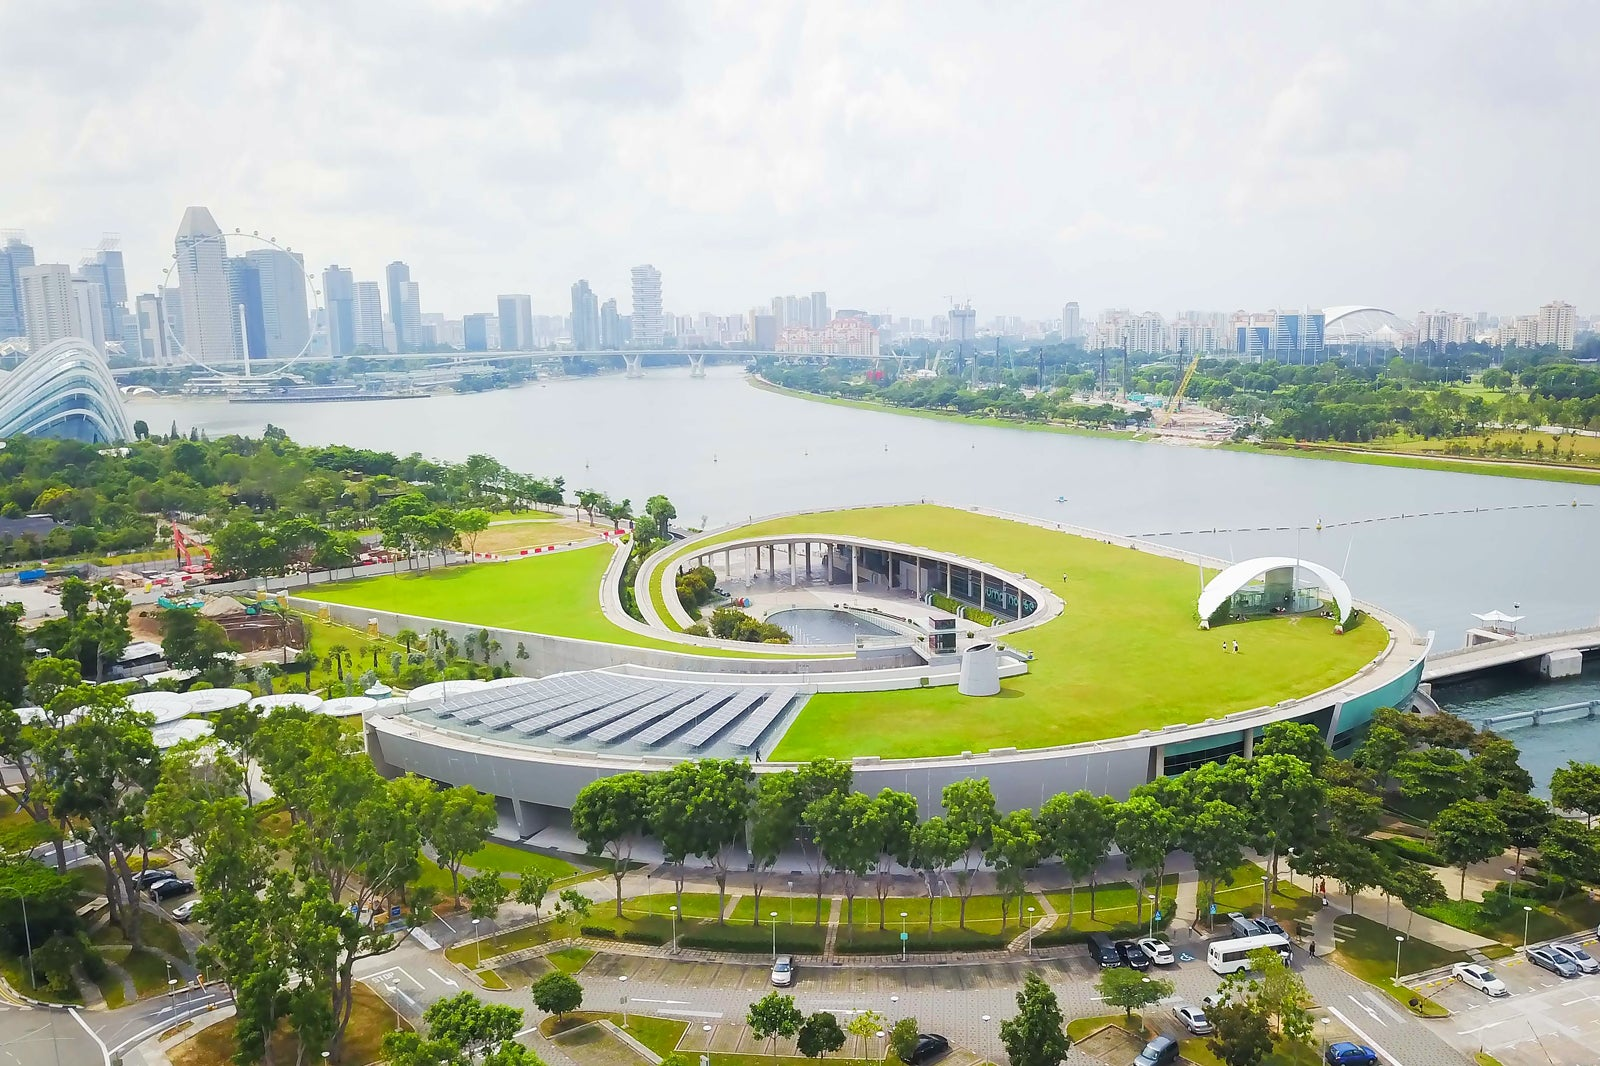 Marina Barrage - Rooftop Park and Dam in Singapore